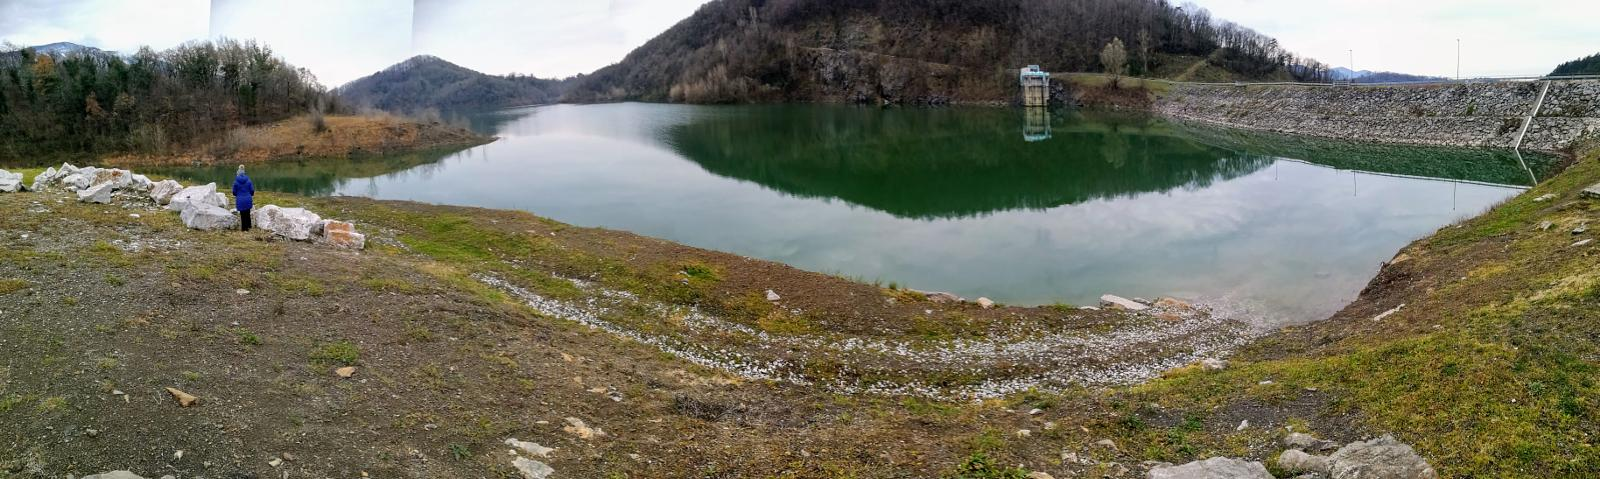 Photo of Vogrsko e il lago Vogršček